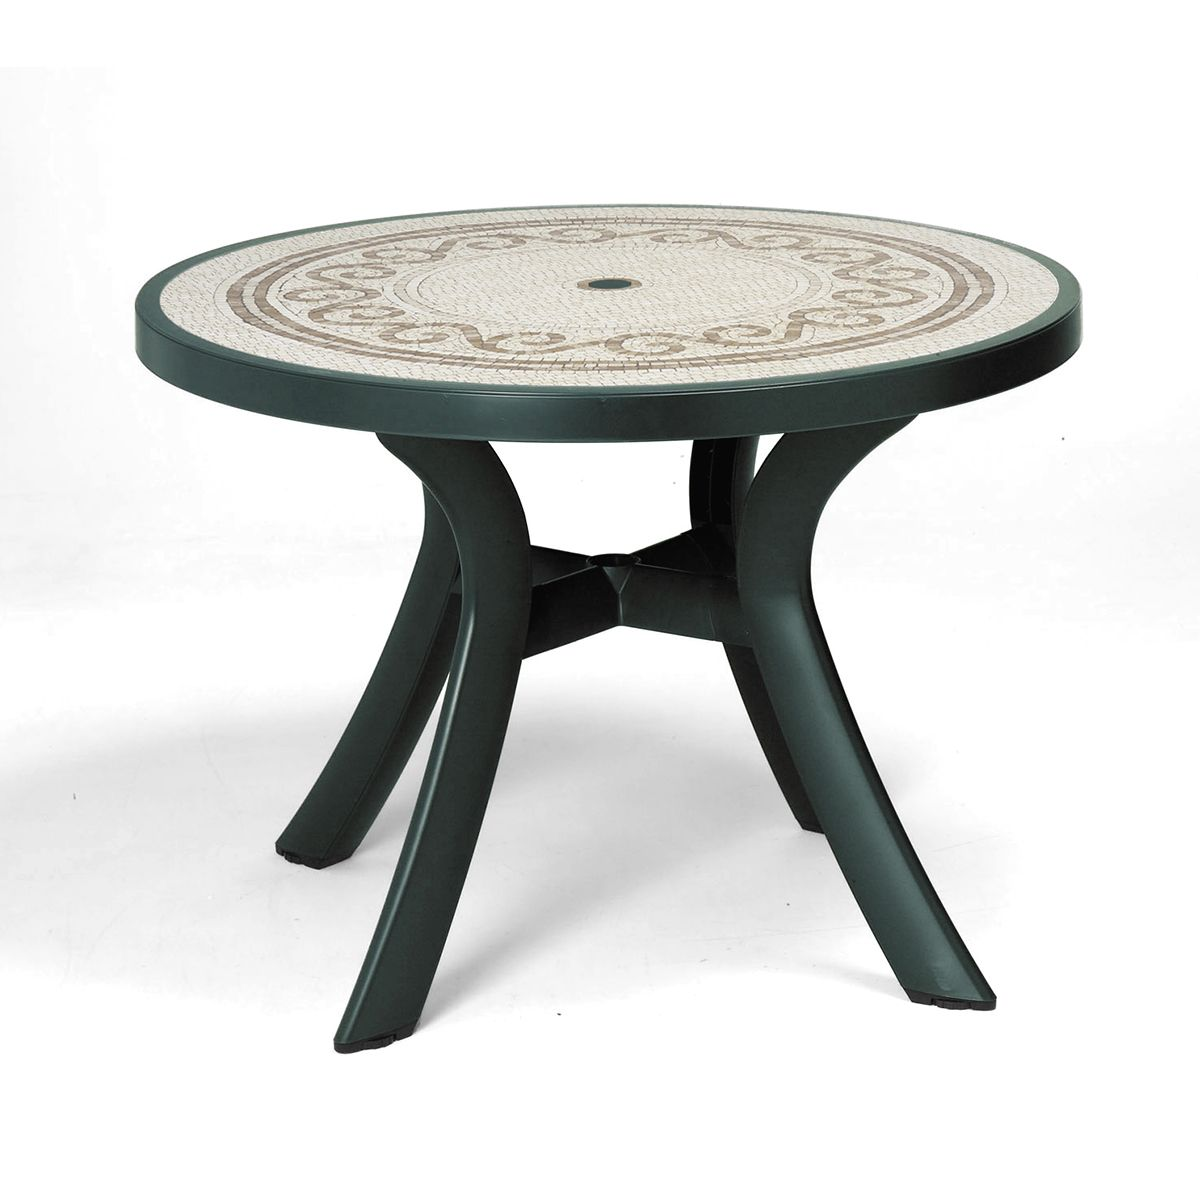 Table de jardin ronde zendart design - Table de jardin design ...